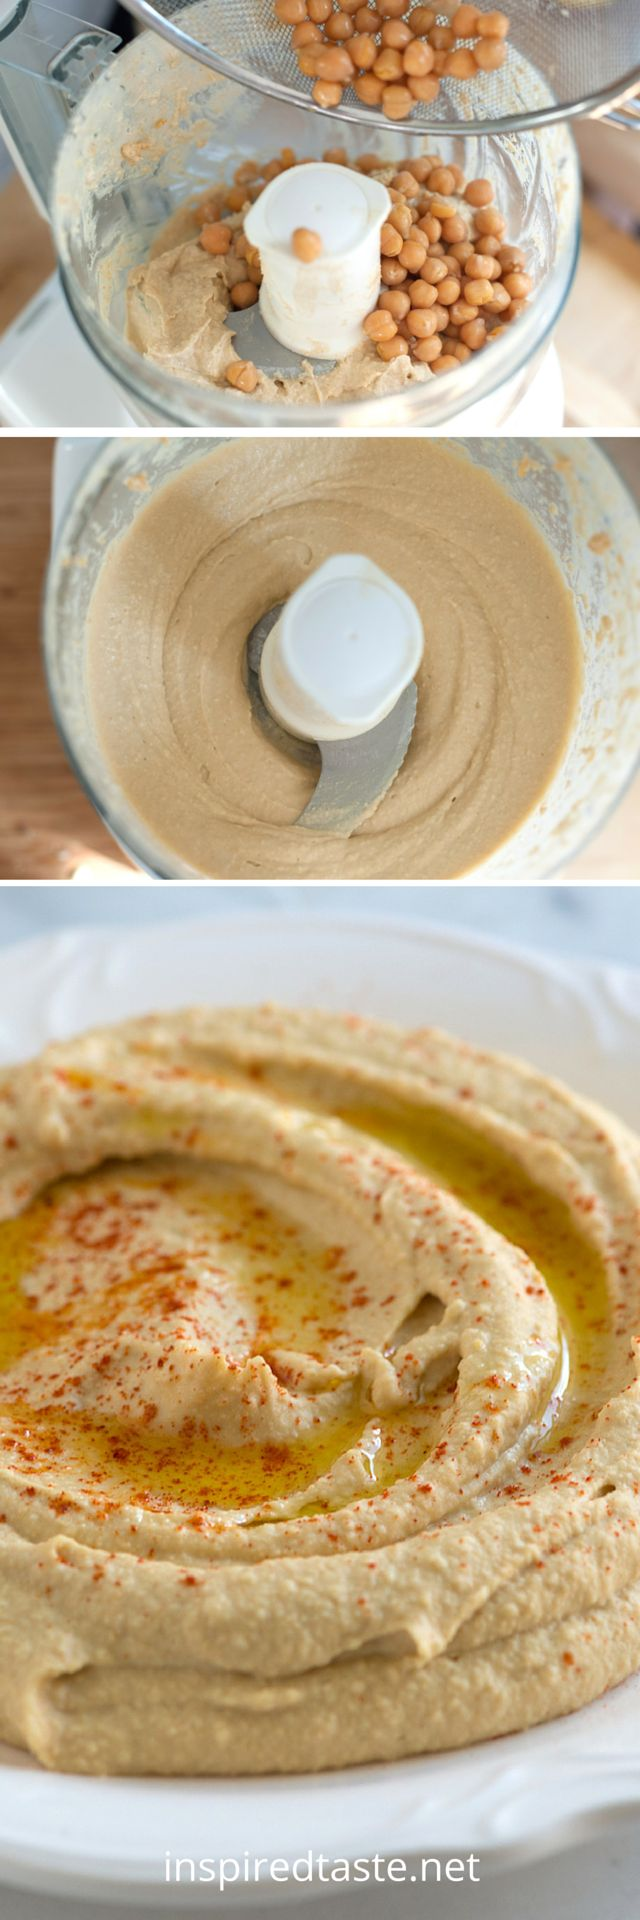 Easy Hummus Recipe Better Than Store Bought